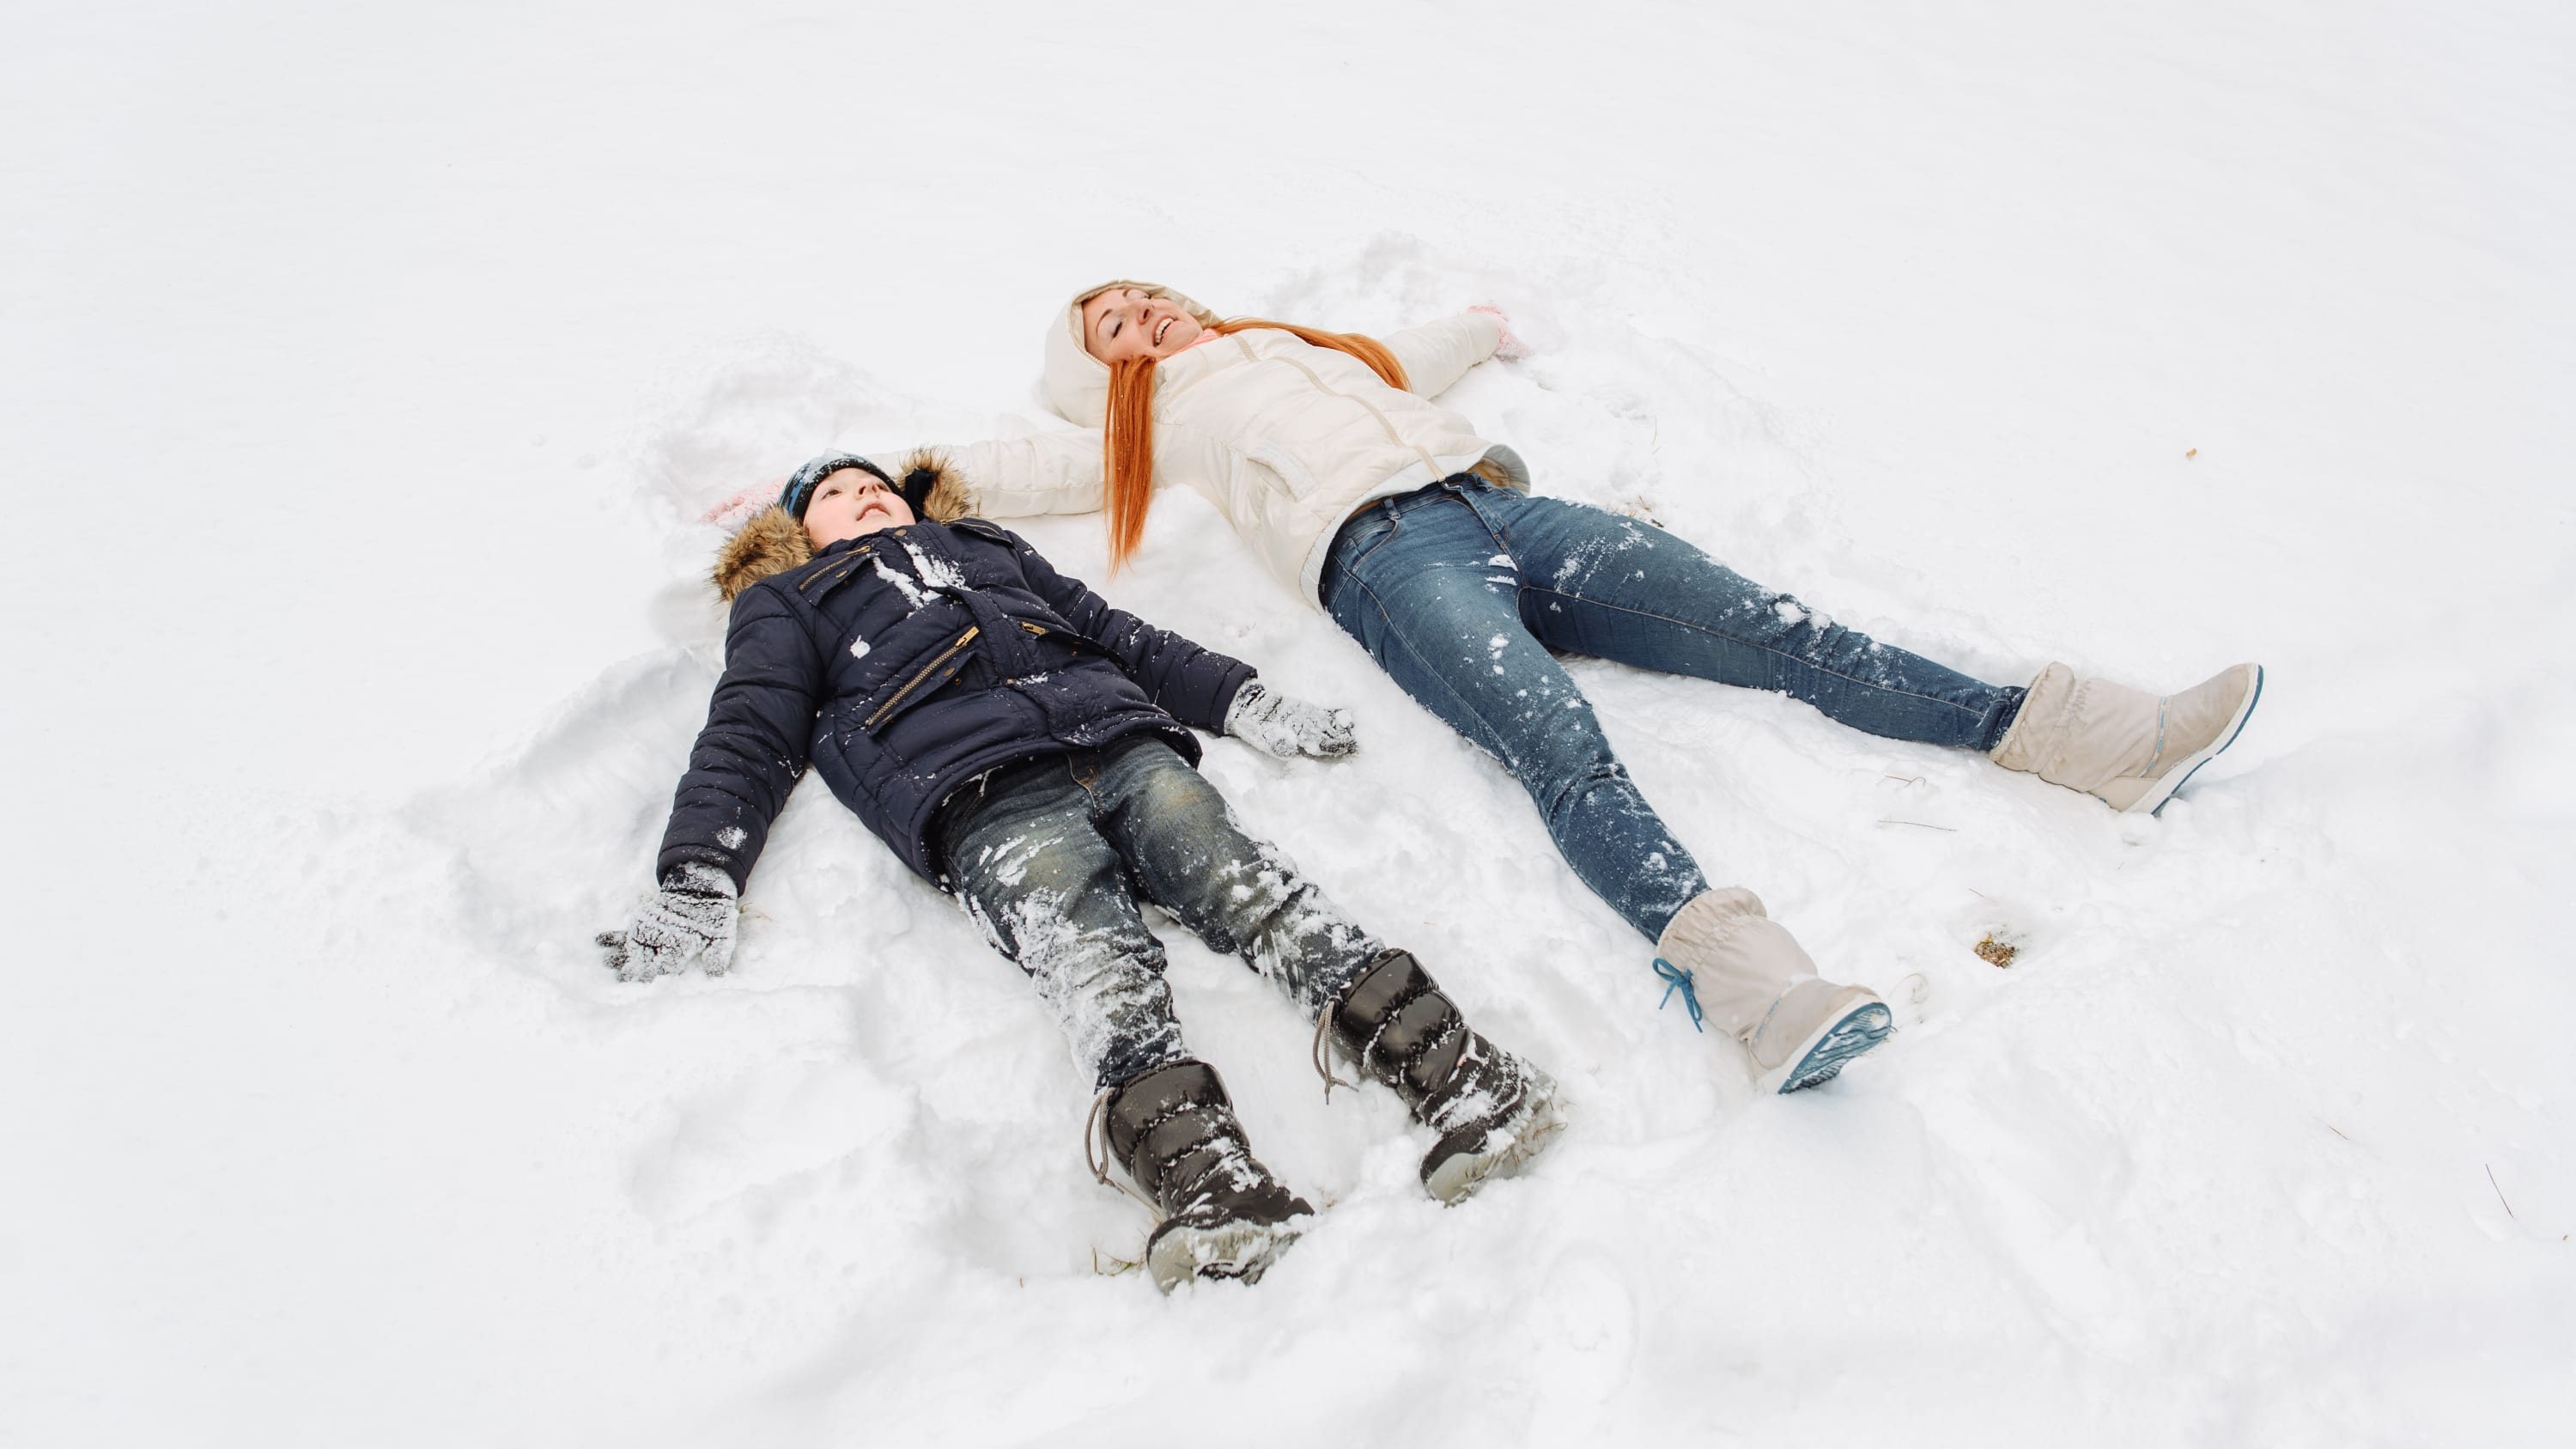 A brother and sister in their winter coats, boots and hats are making angels in the snow.